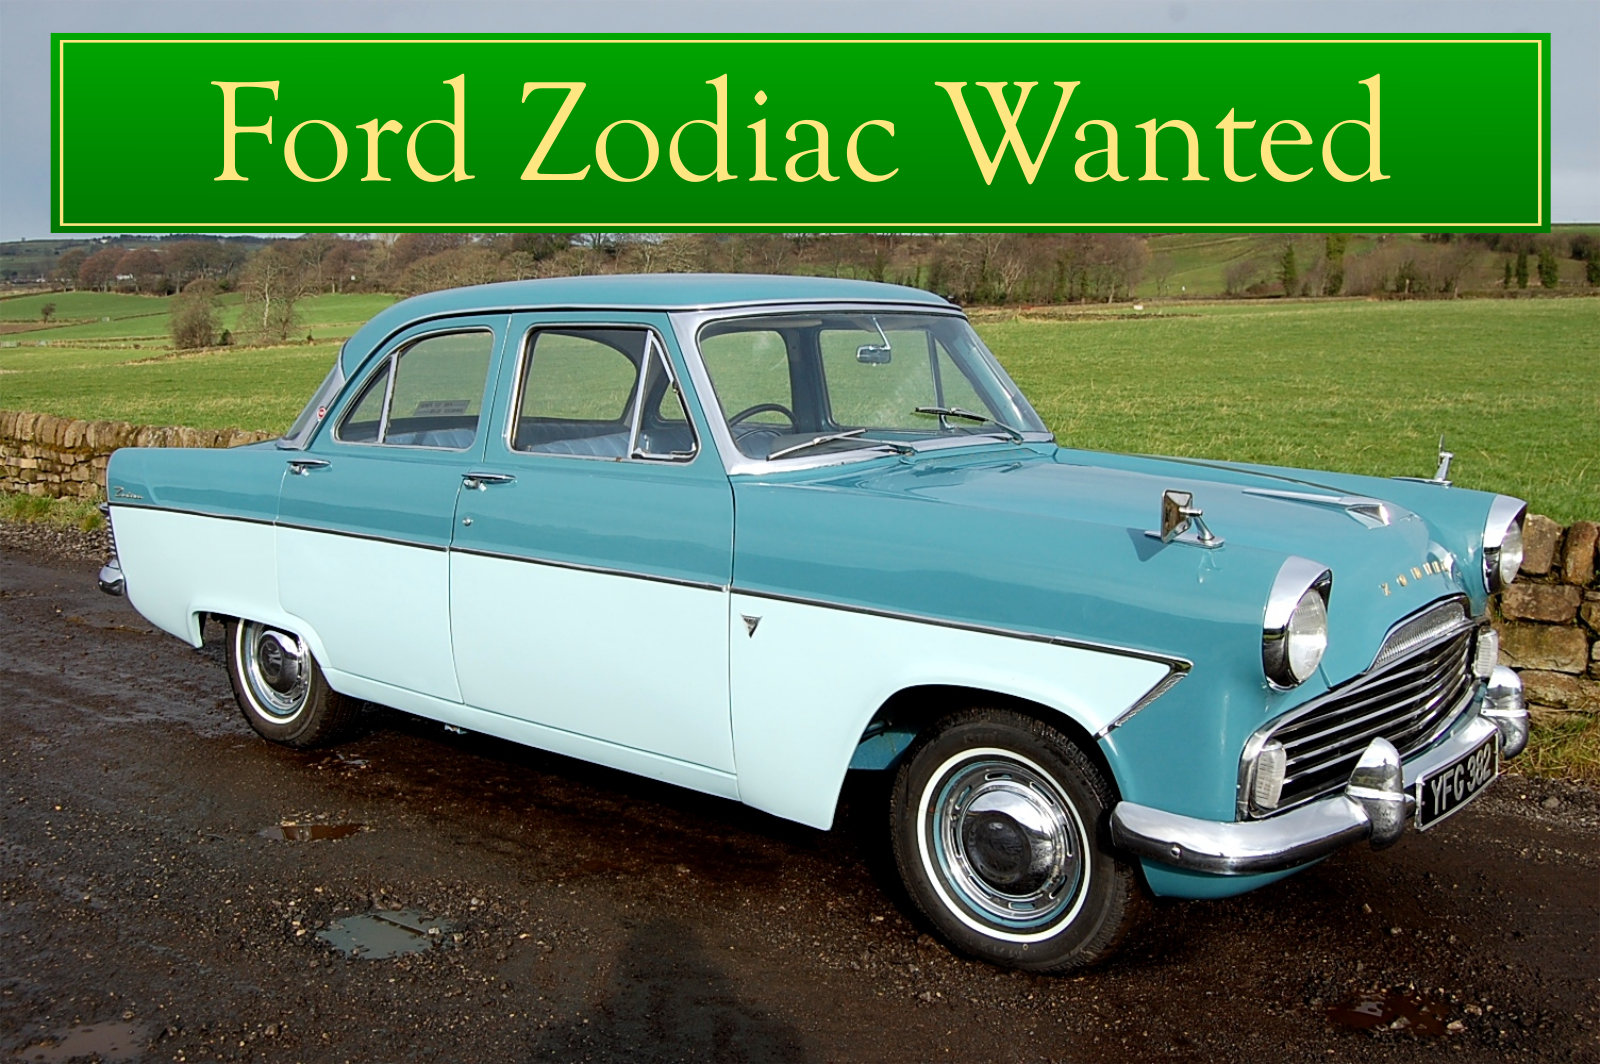 FORD ZODIAC MK2 WANTED, CLASSIC CARS WANTED, INSTANT PAYMENT Wanted (picture 1 of 6)